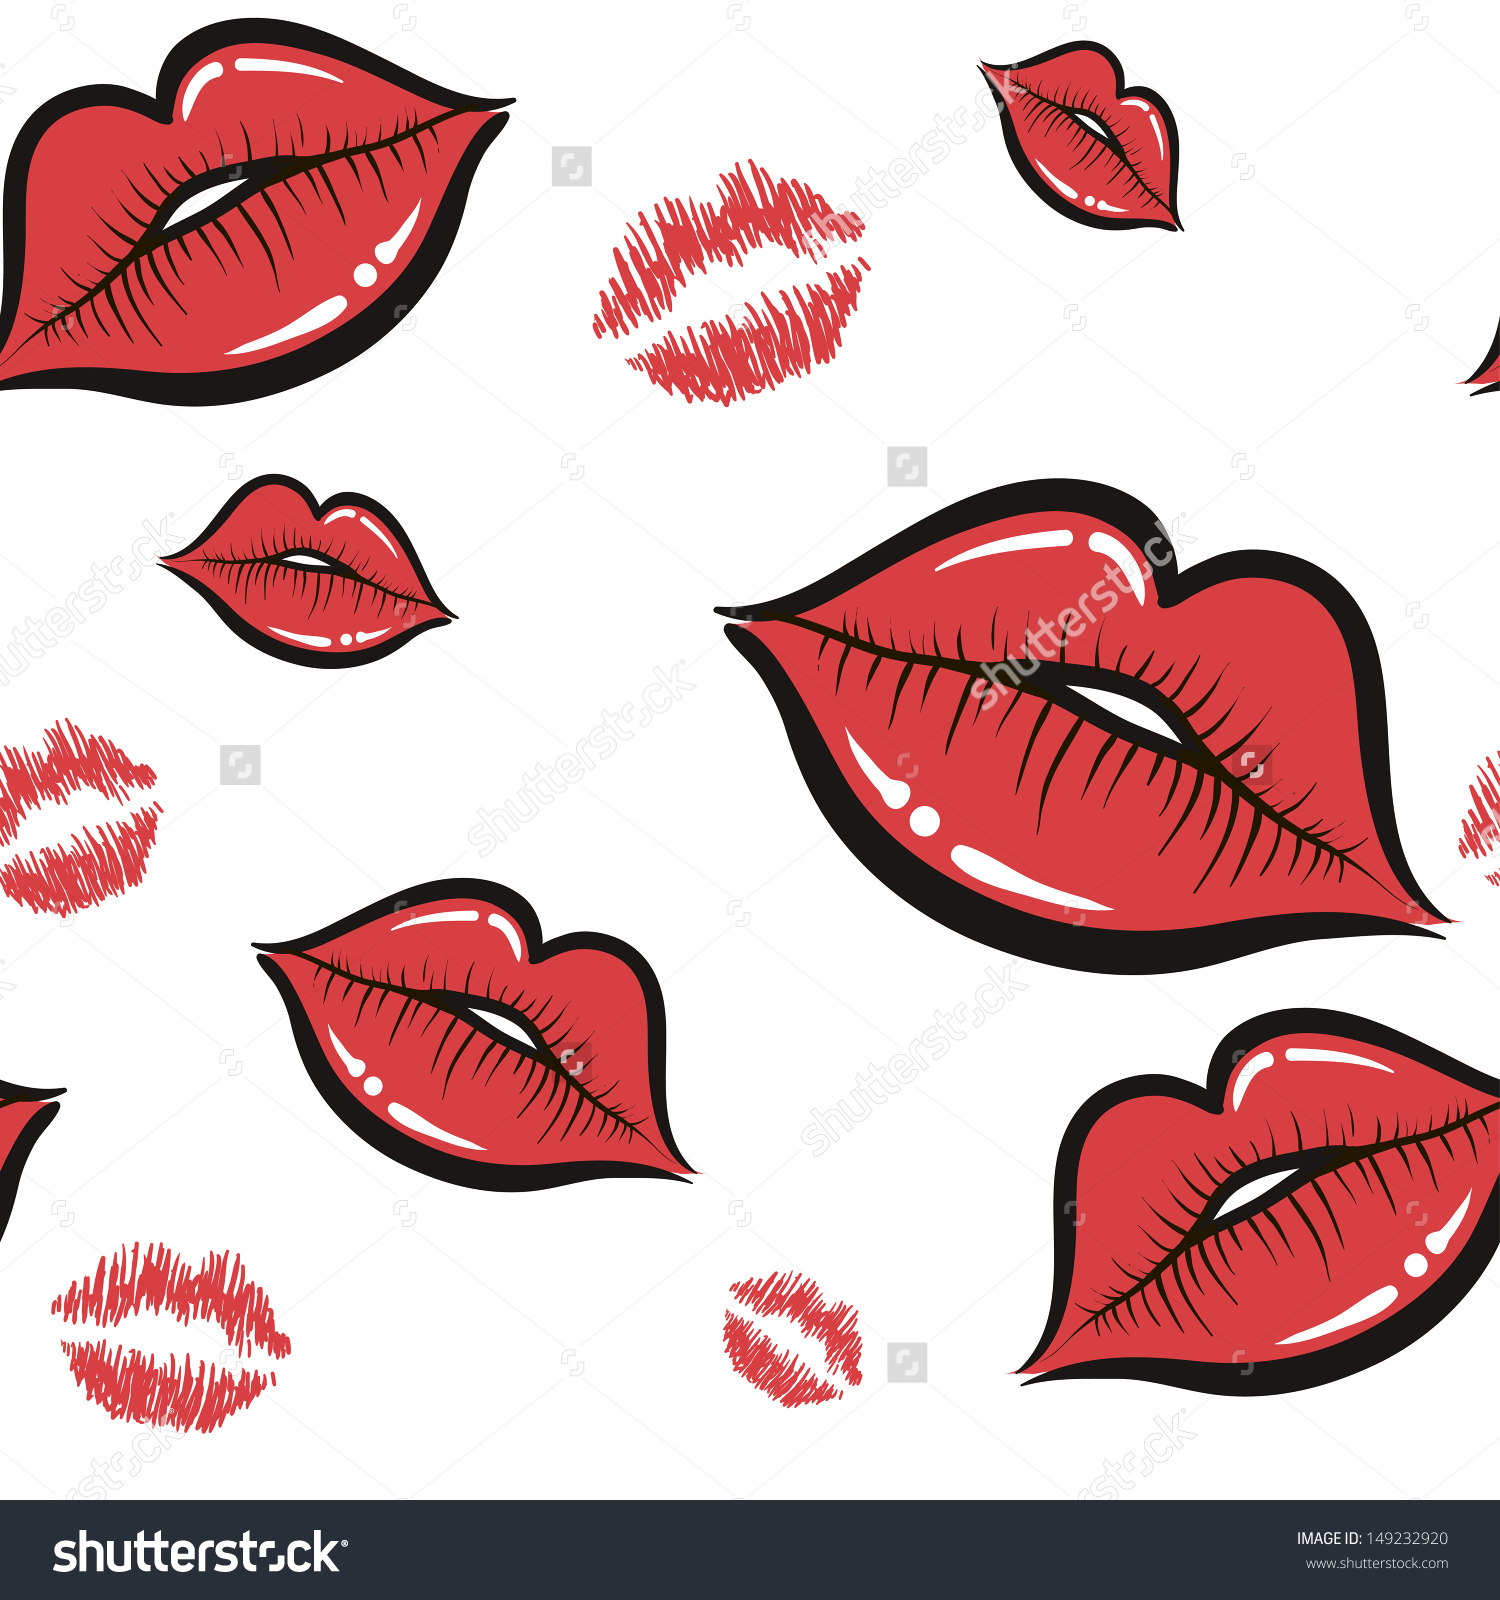 Wallpaper Lips Design